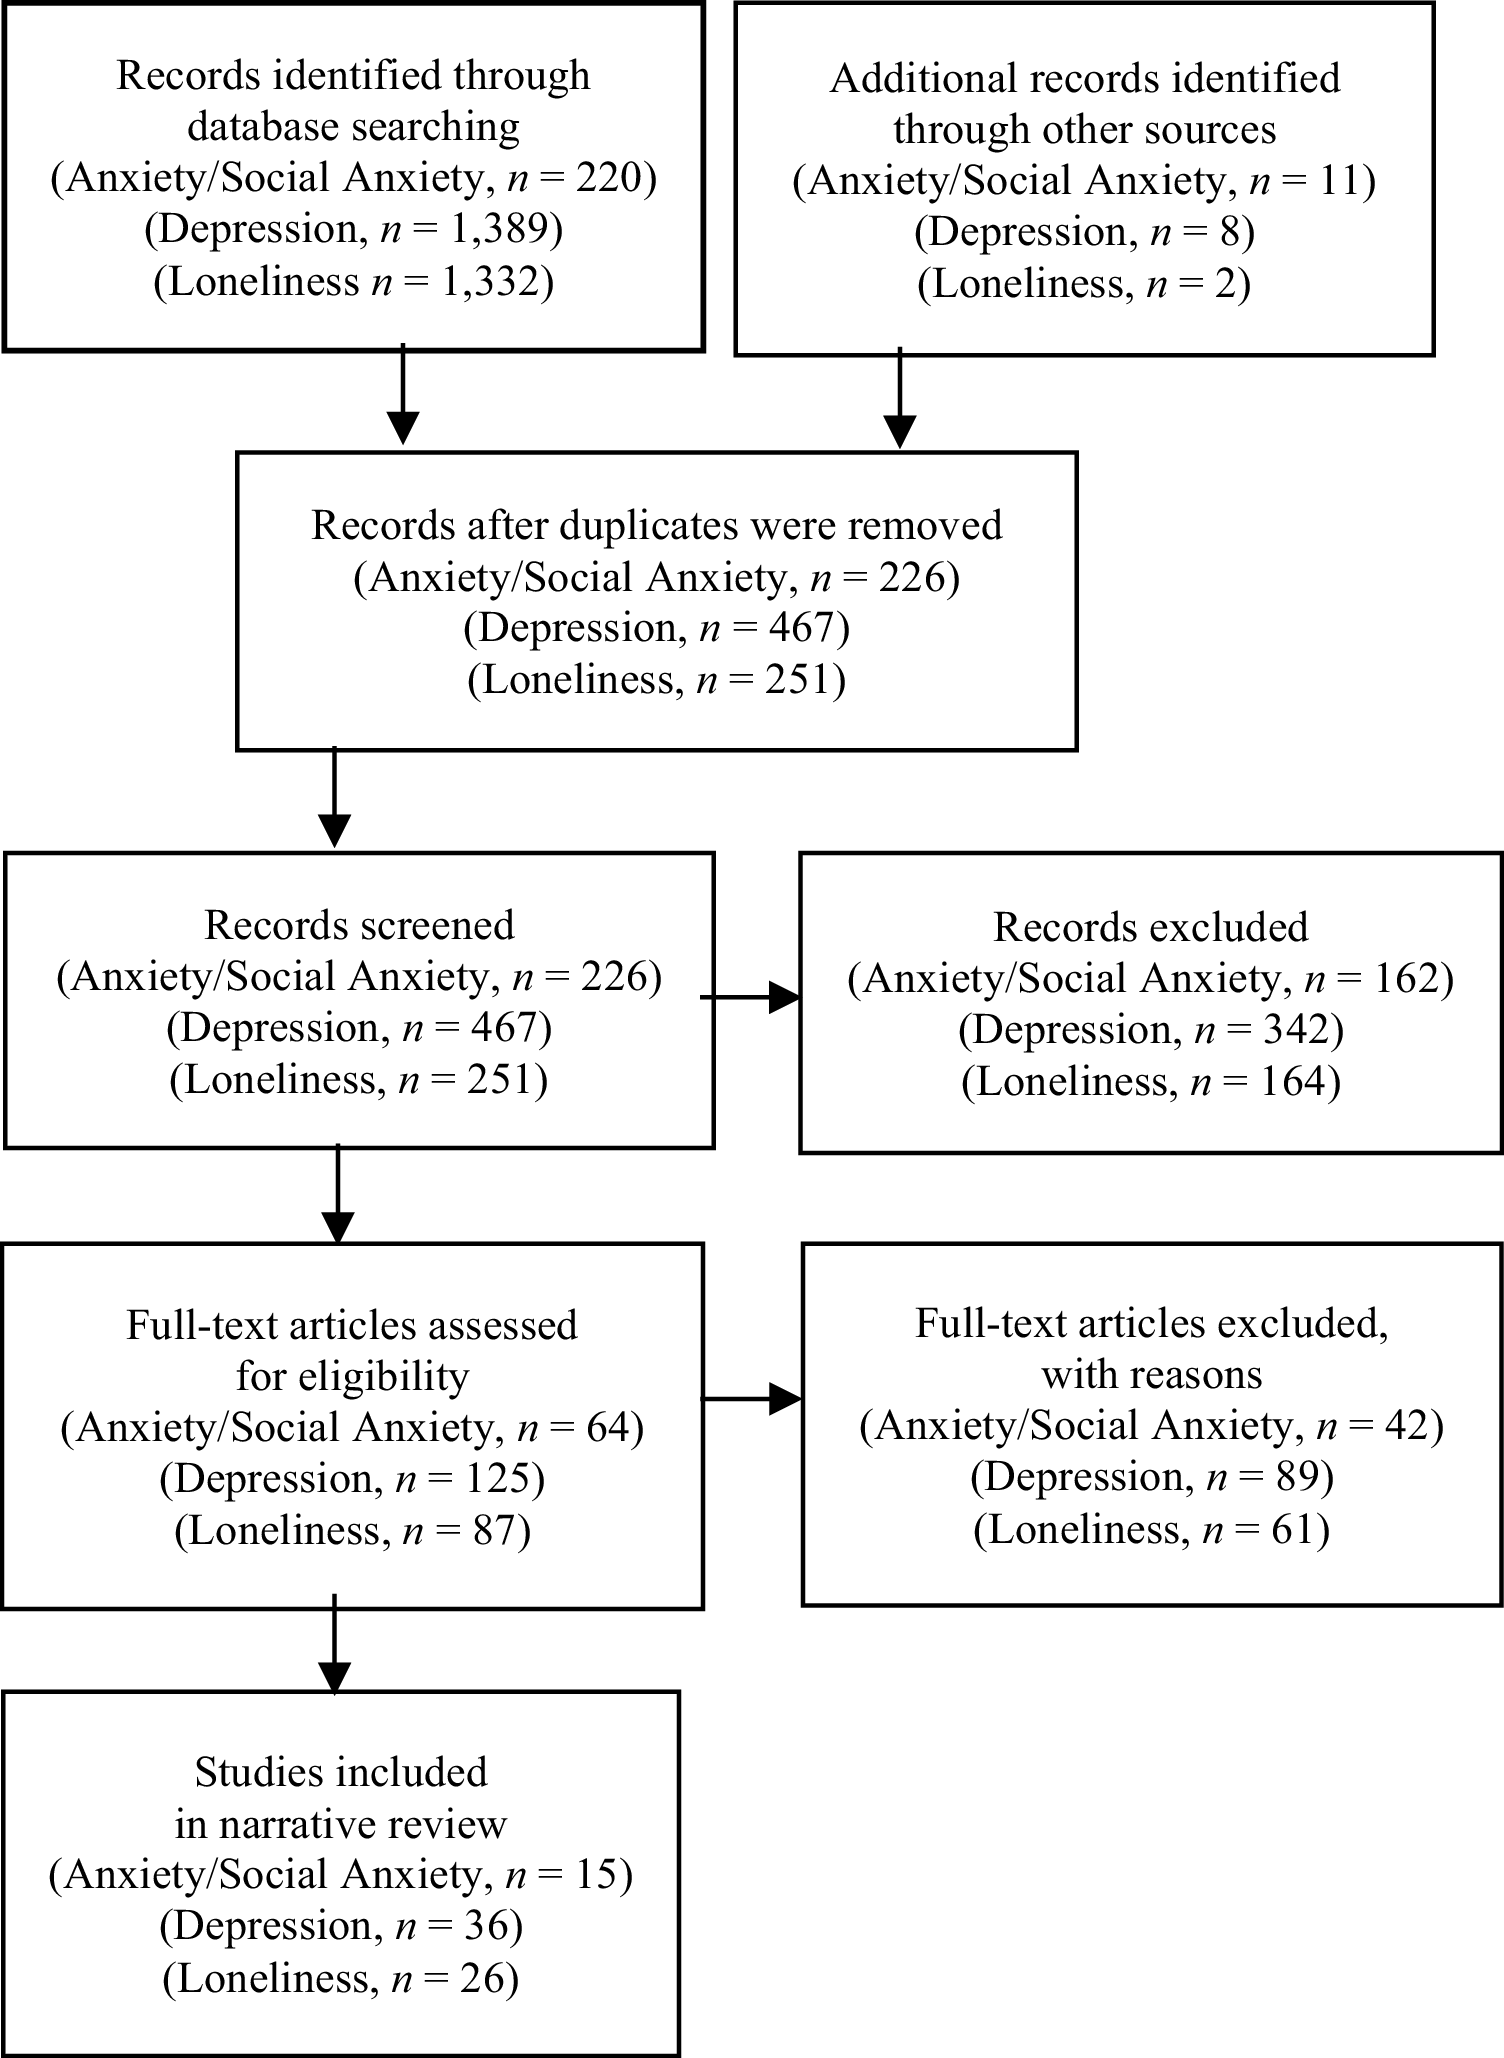 How Does Social Media Use Relate to Adolescents' Internalizing